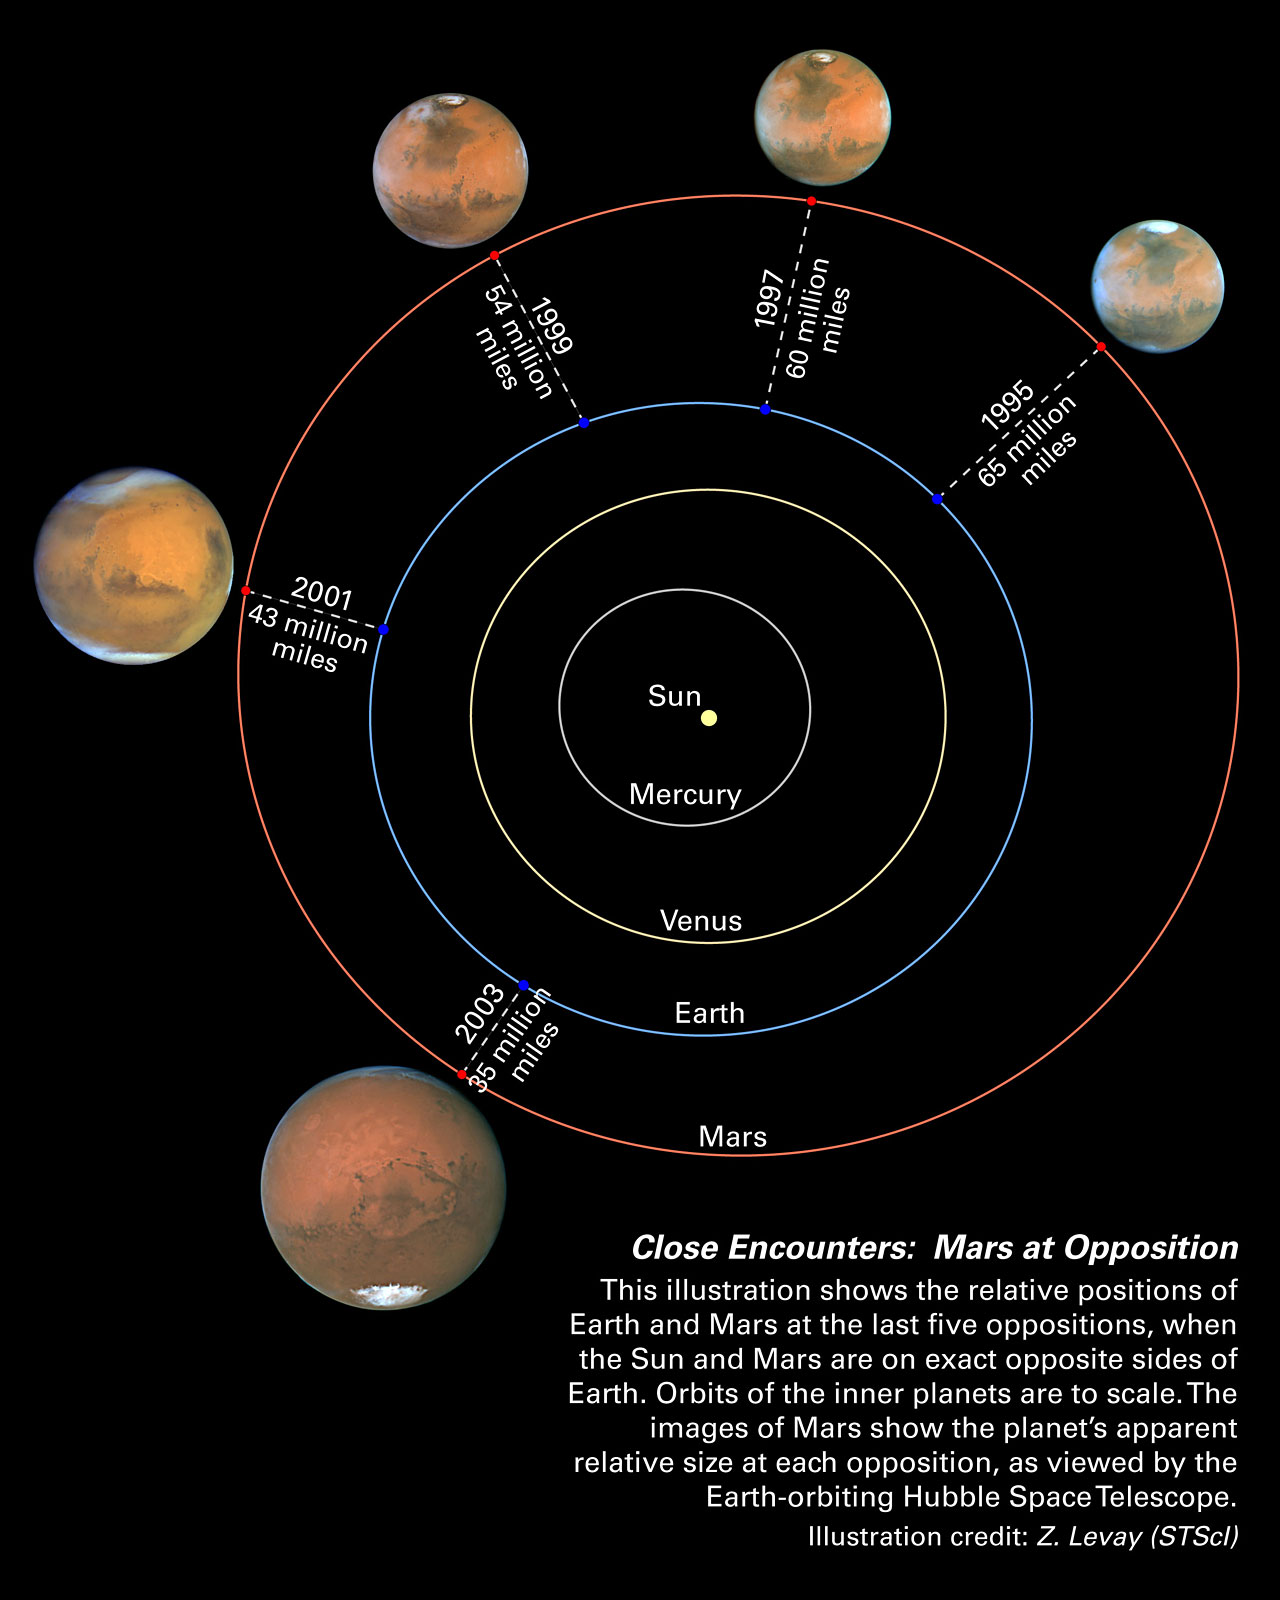 Mars oppositions solar system diagram esahubble mars oppositions solar system diagram ccuart Choice Image